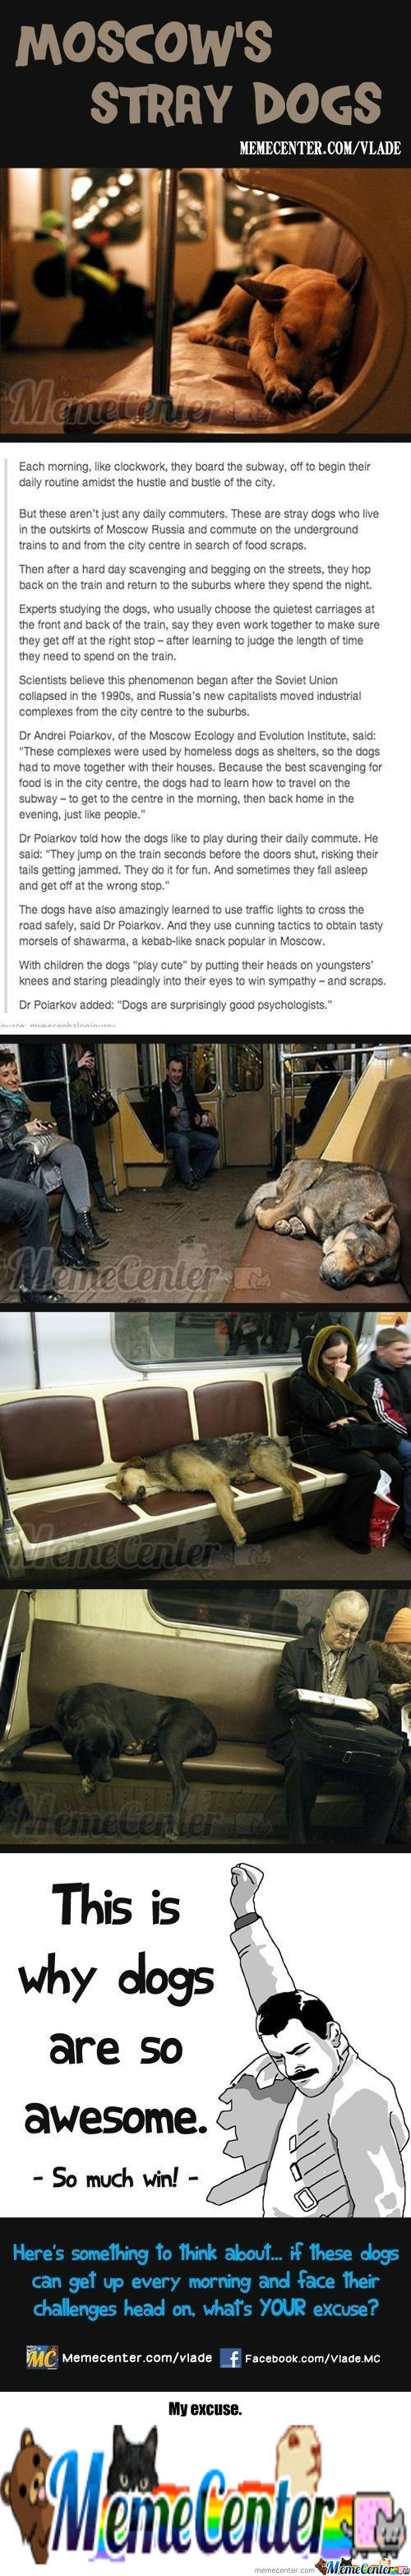 [RMX] Moscow's Stray Dogs